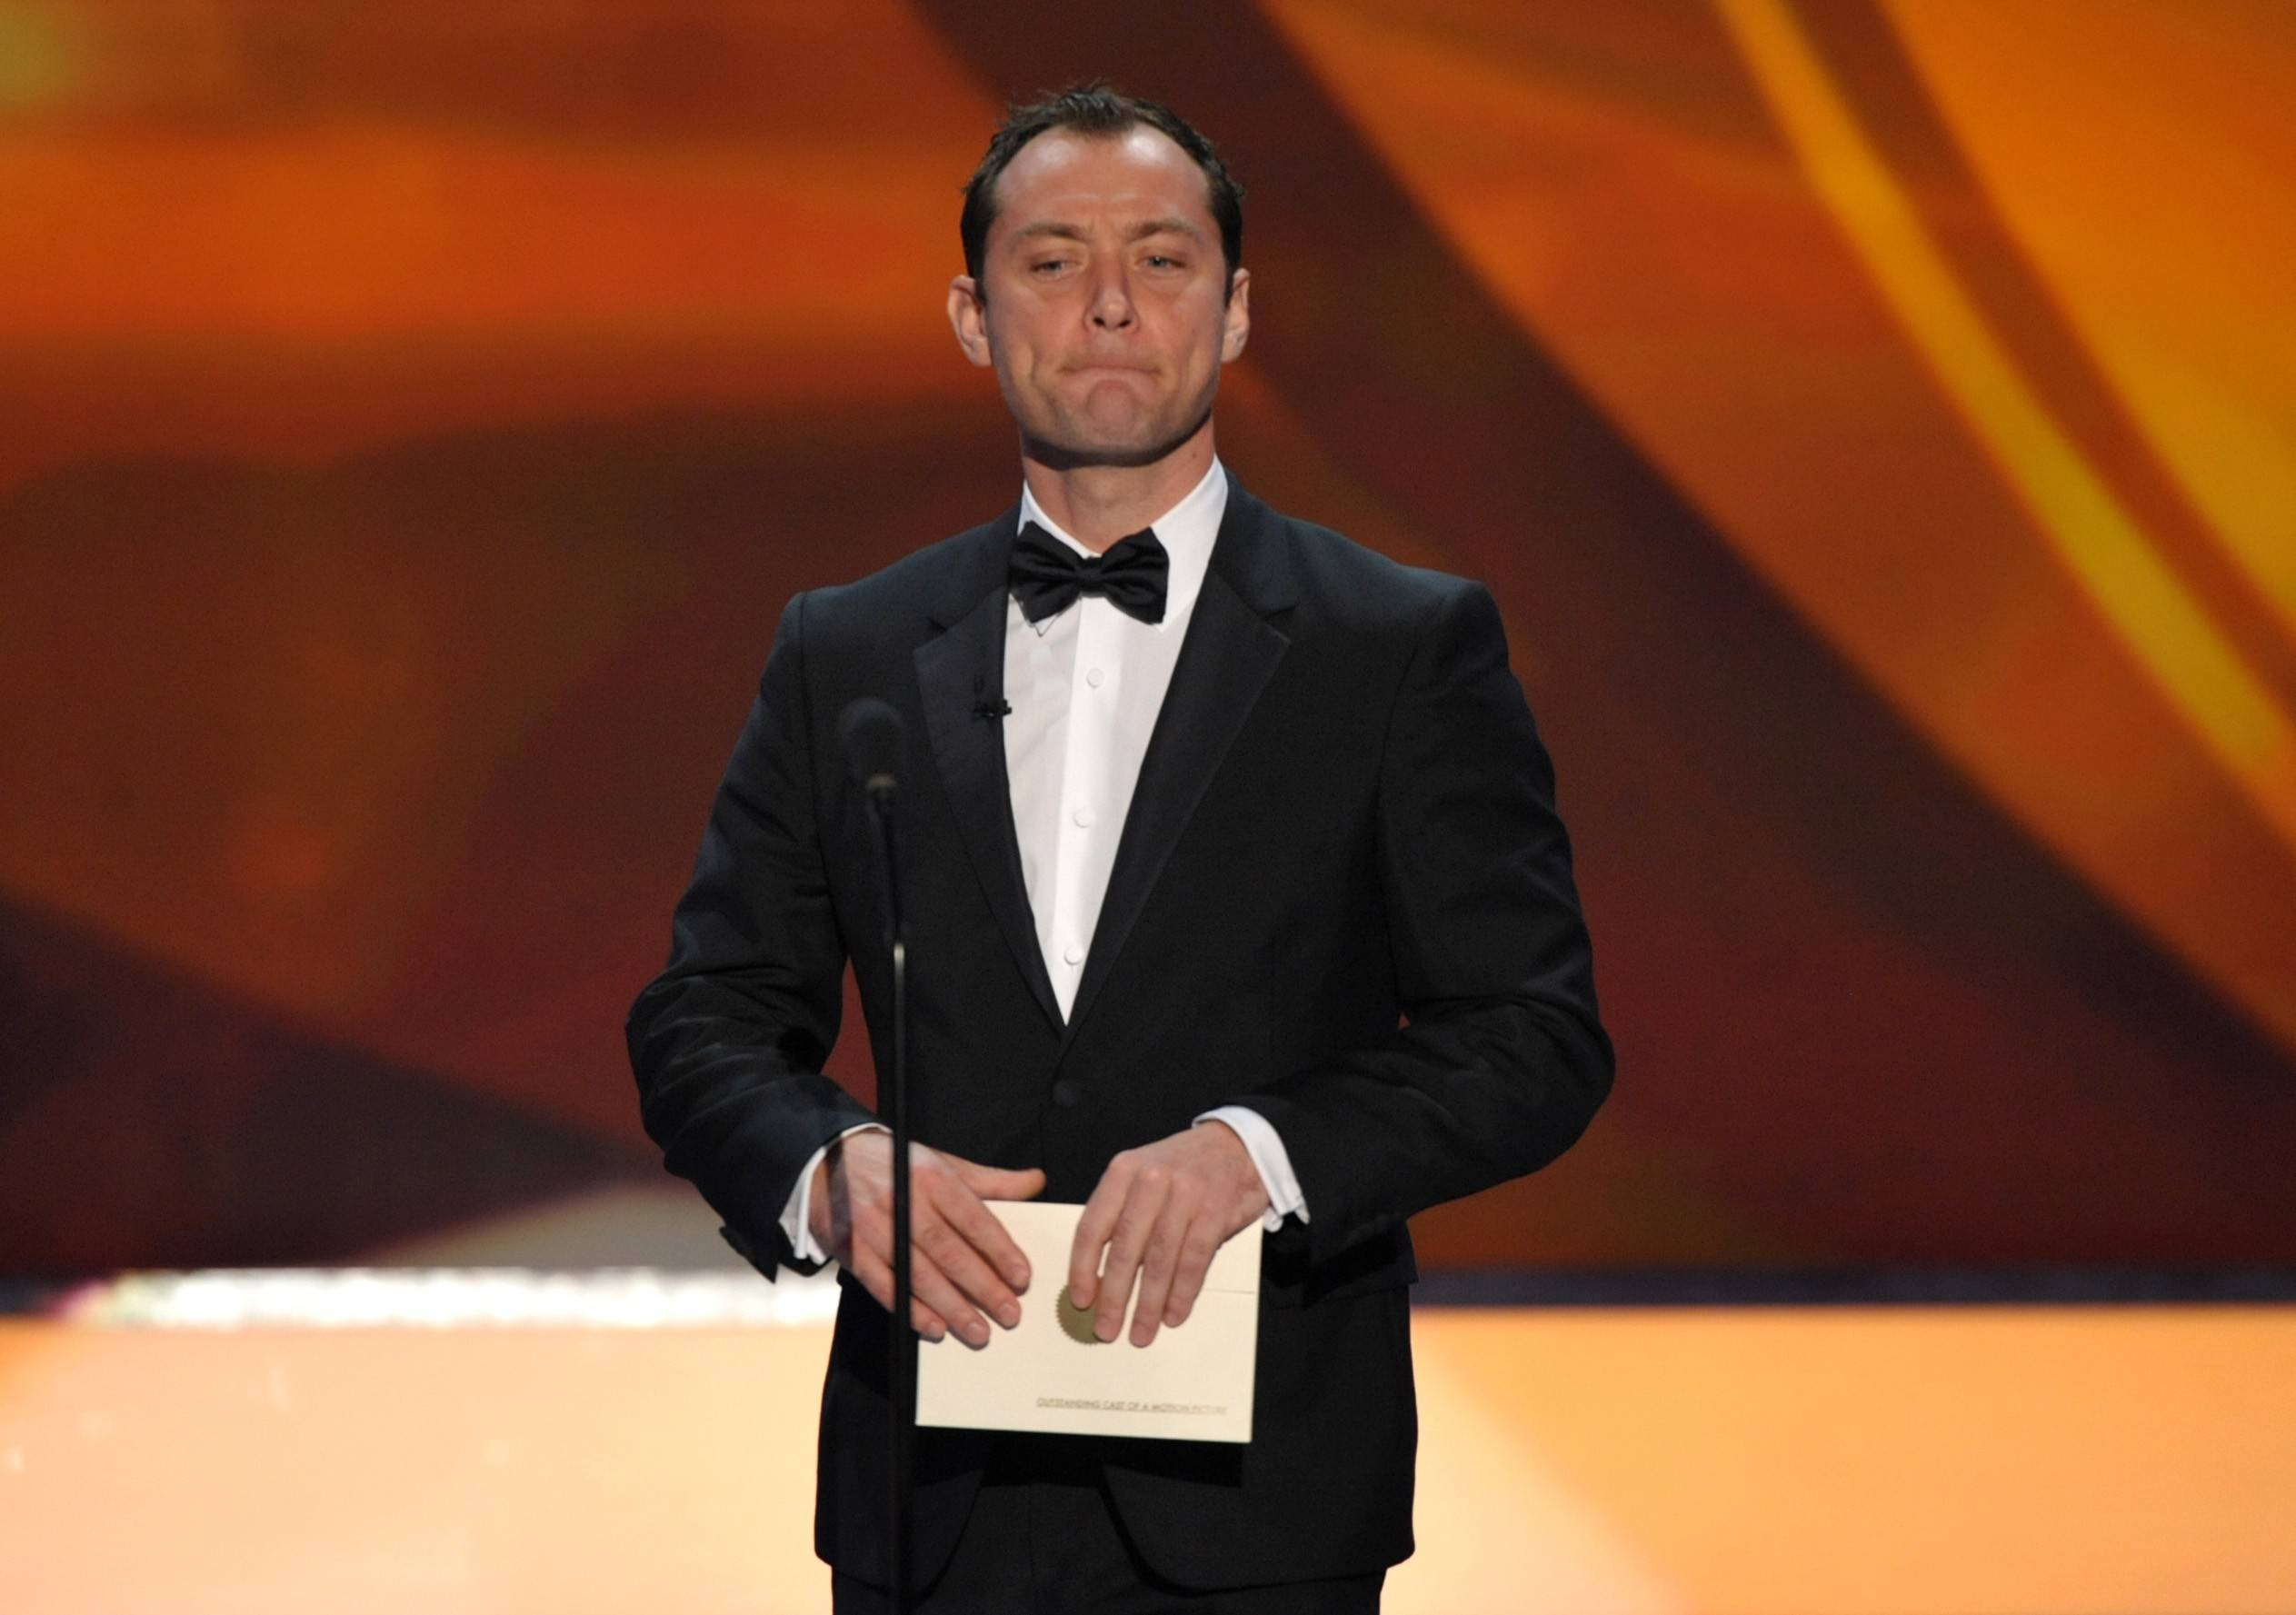 Jude Law presents the award for best cast.